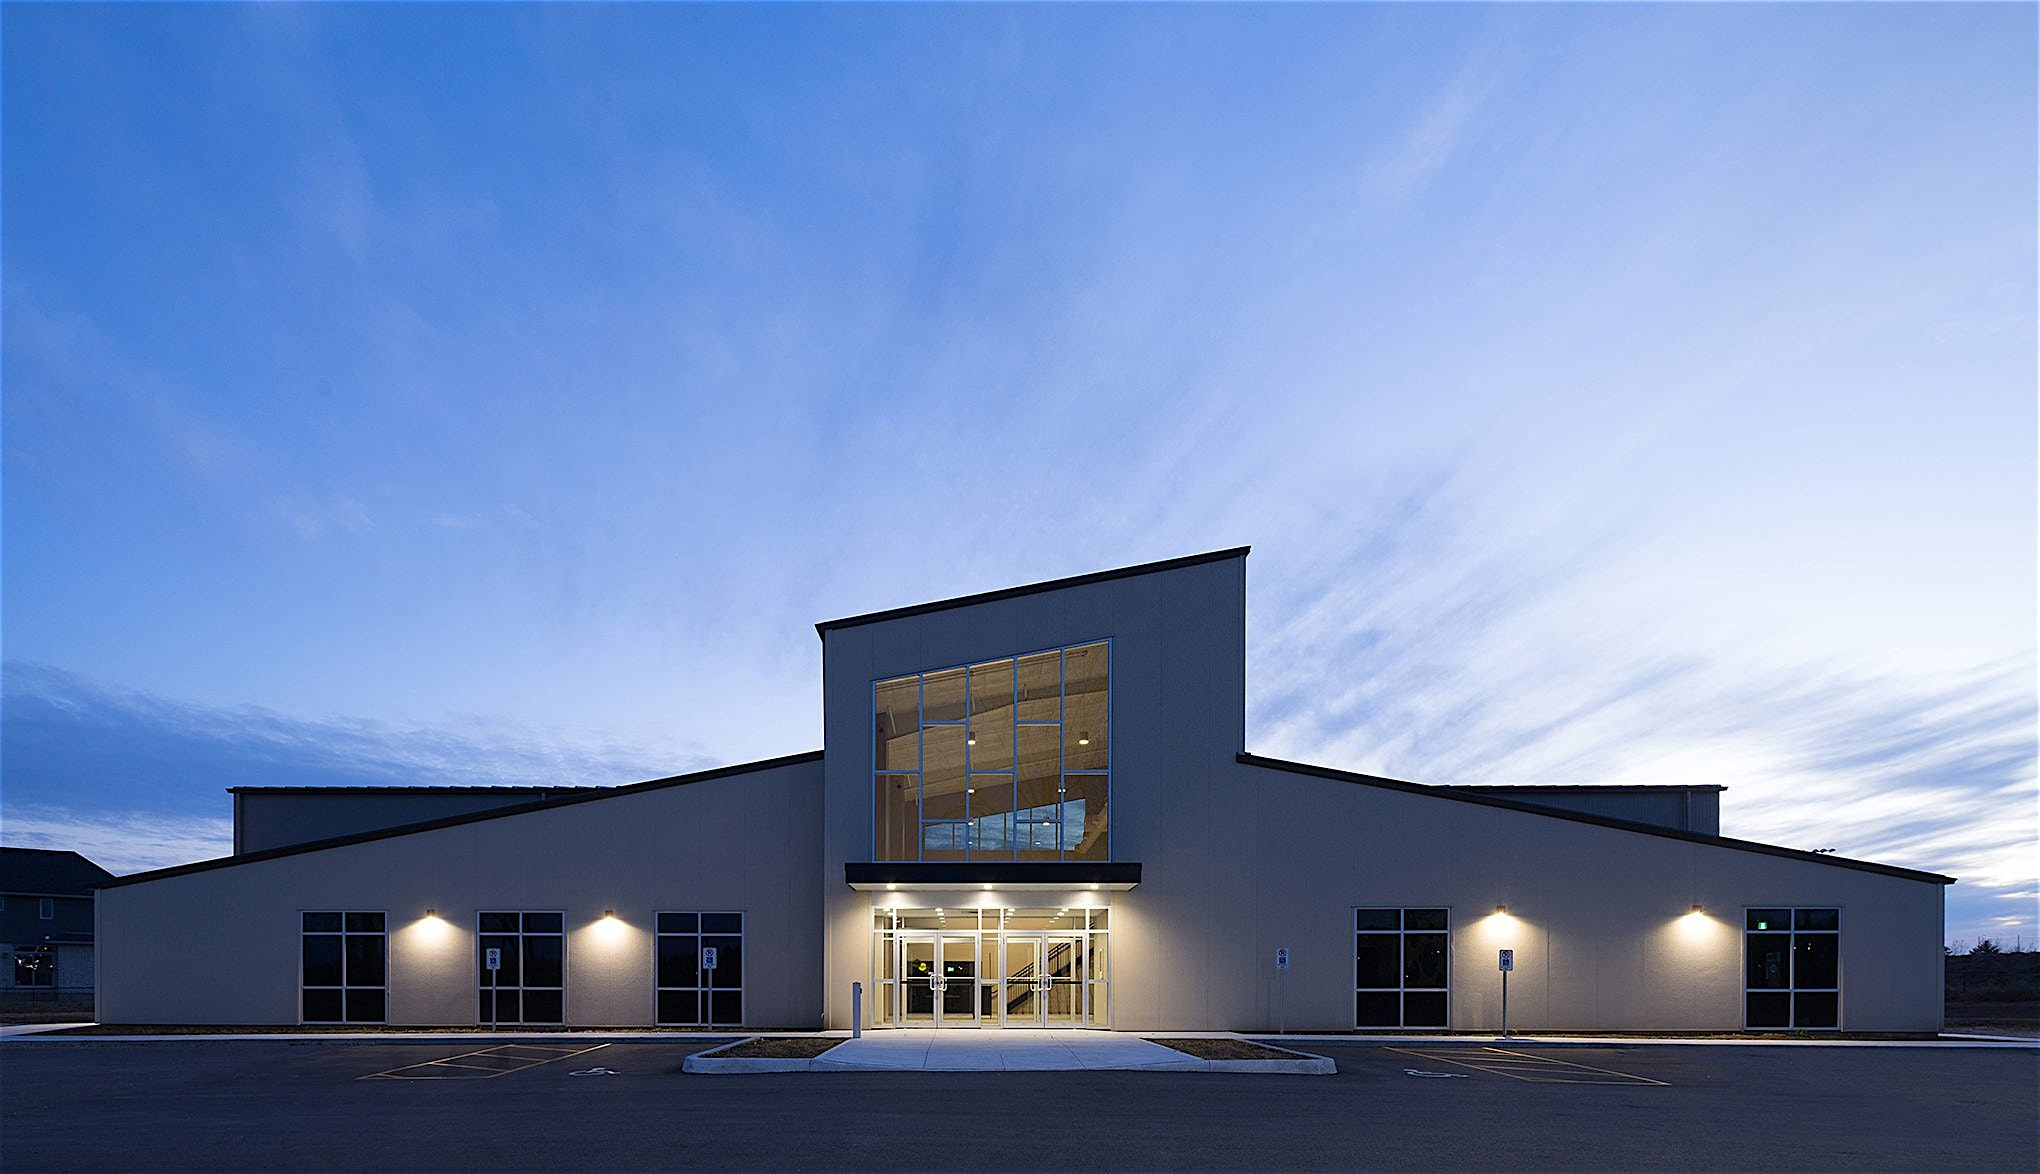 Architectural Twilight Building Photography by Scott Webb